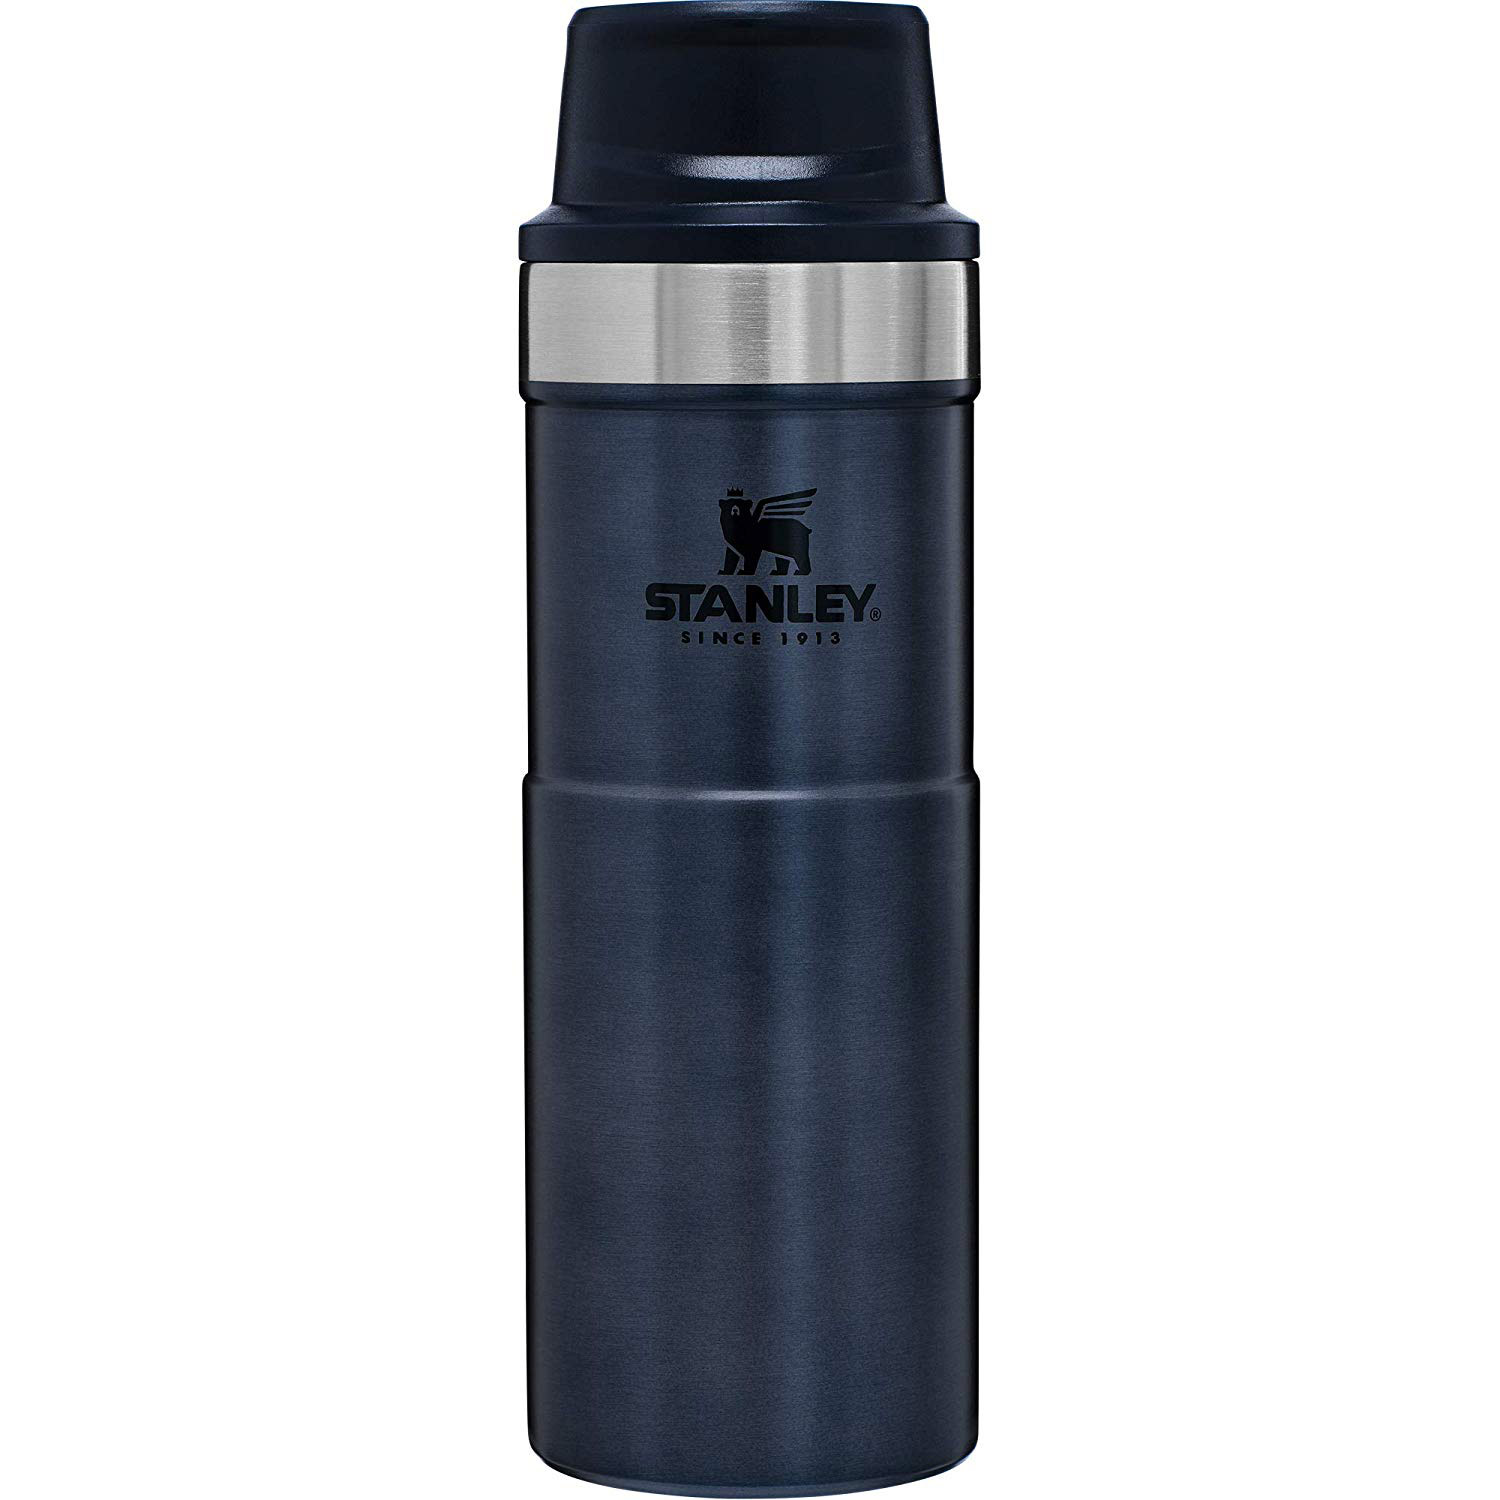 White elephant gift ideas - Stanley Classic Trigger-Action Travel Mug